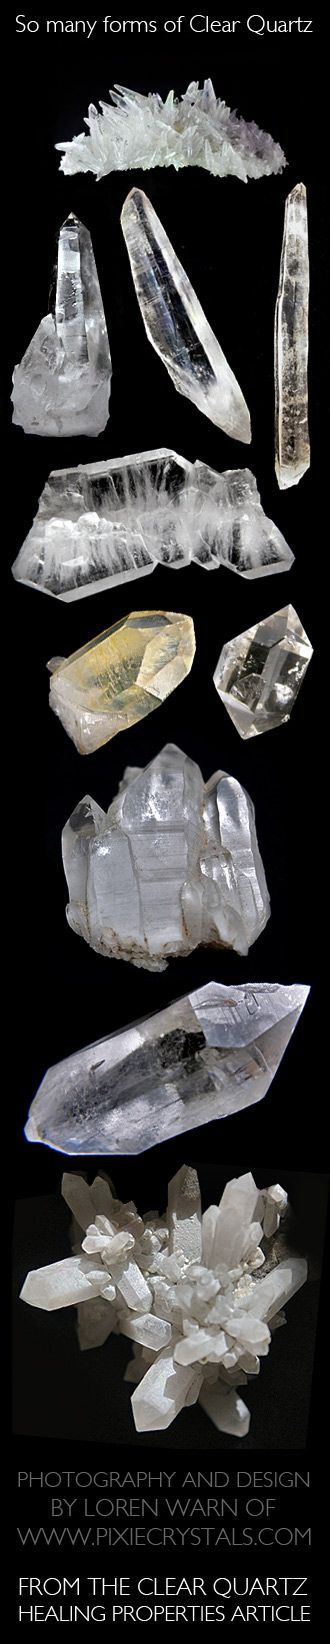 CLEAR QUARTZ Crystal Healing Properties - CLEAR QUARTZ Crystals Meaning, Healing and Further Explanations - full article...